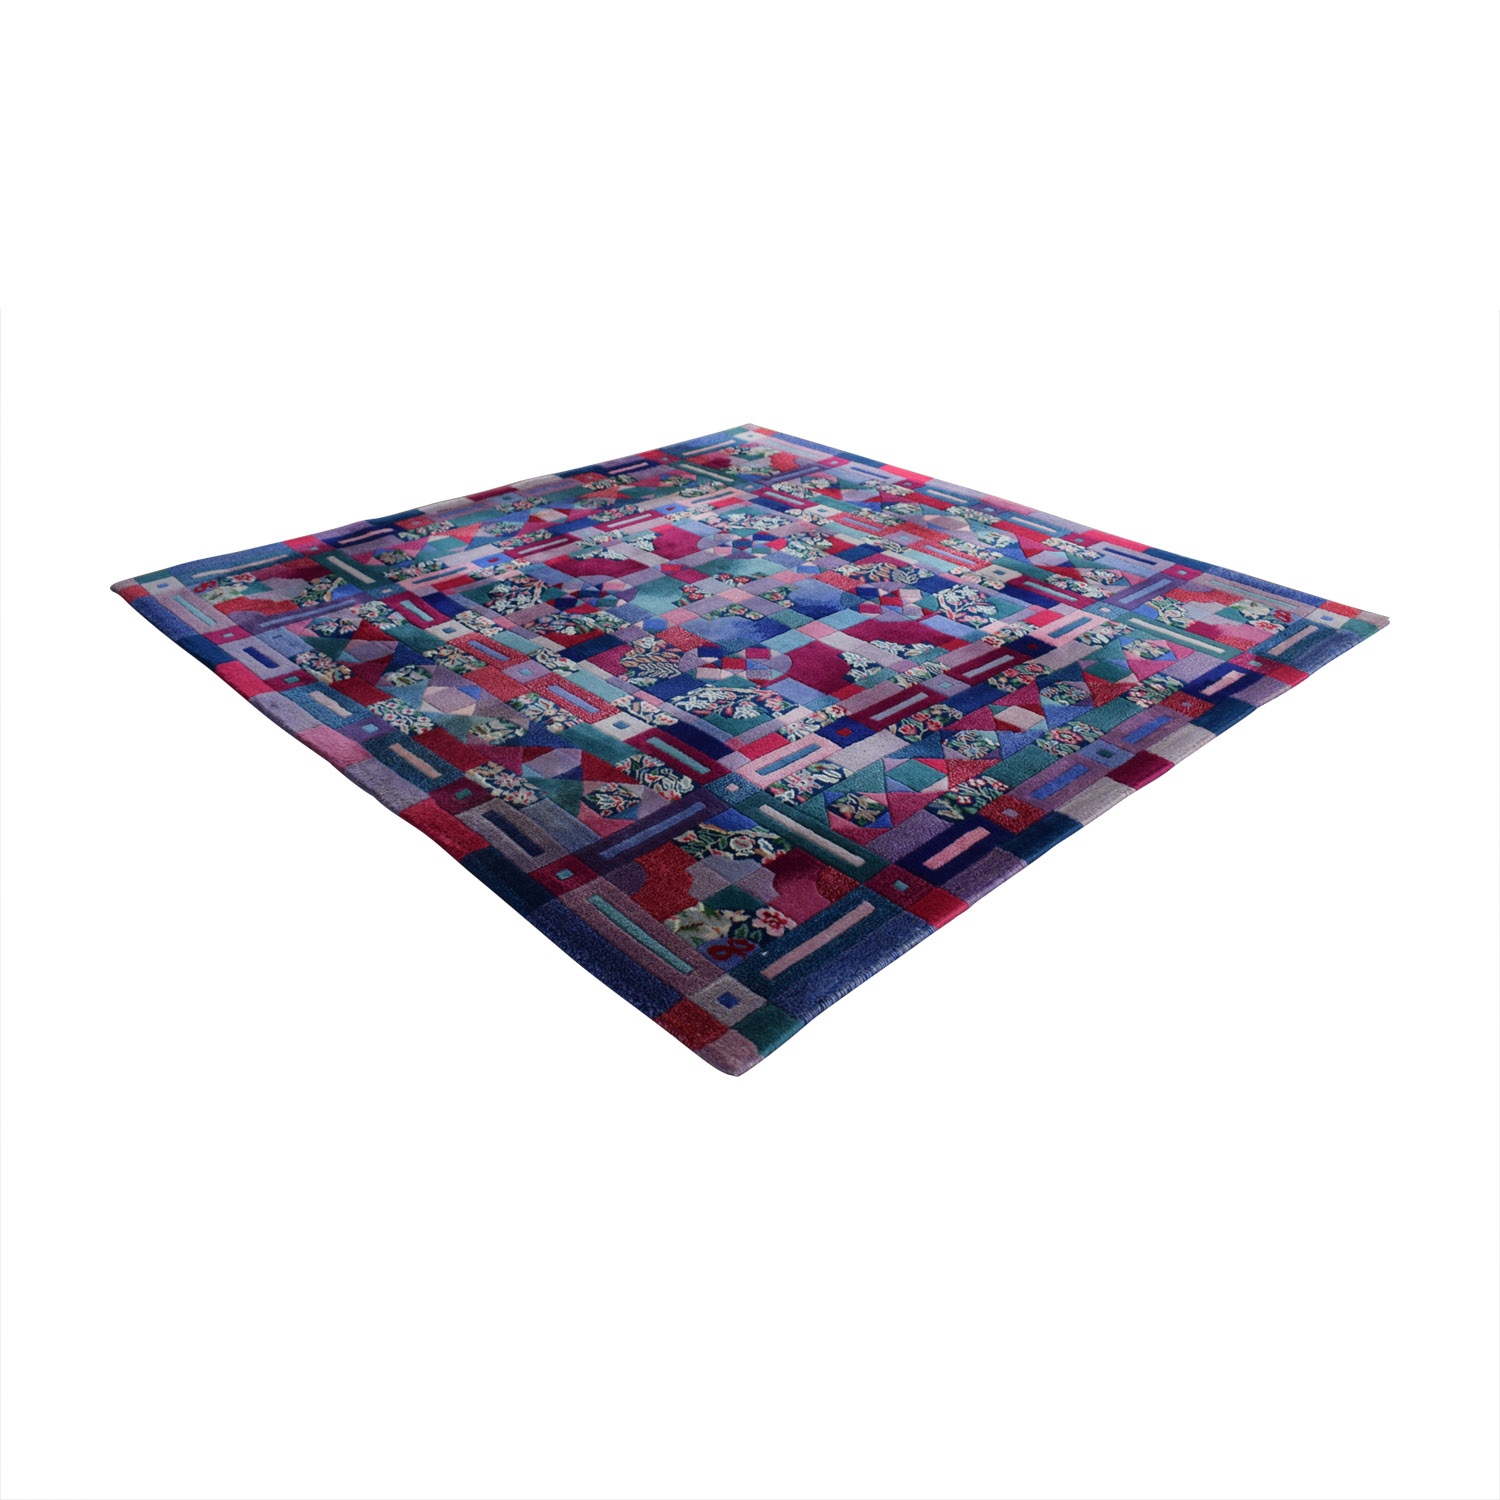 ABC Carpet & Home Square Wool Patchwork Rug ABC Carpet & Home